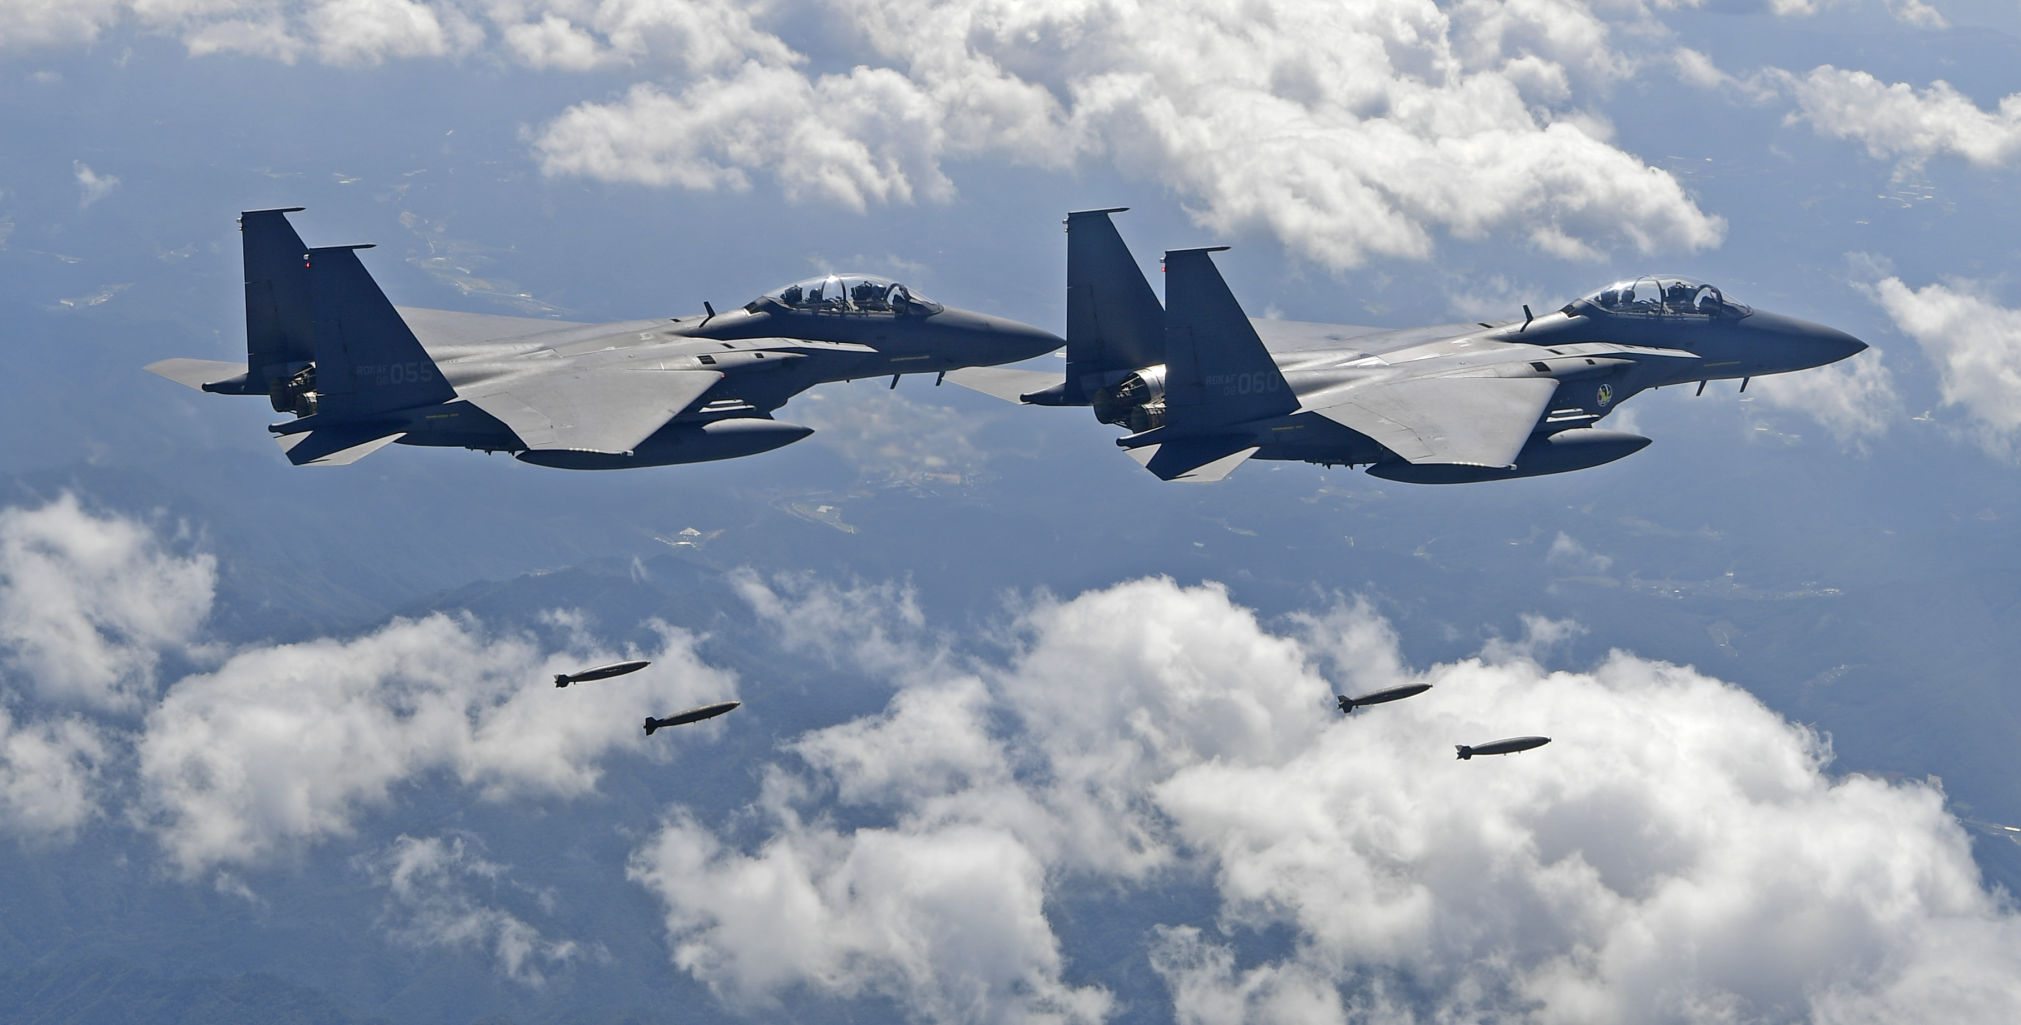 USA flies powerful warplanes amid tensions with North Korea